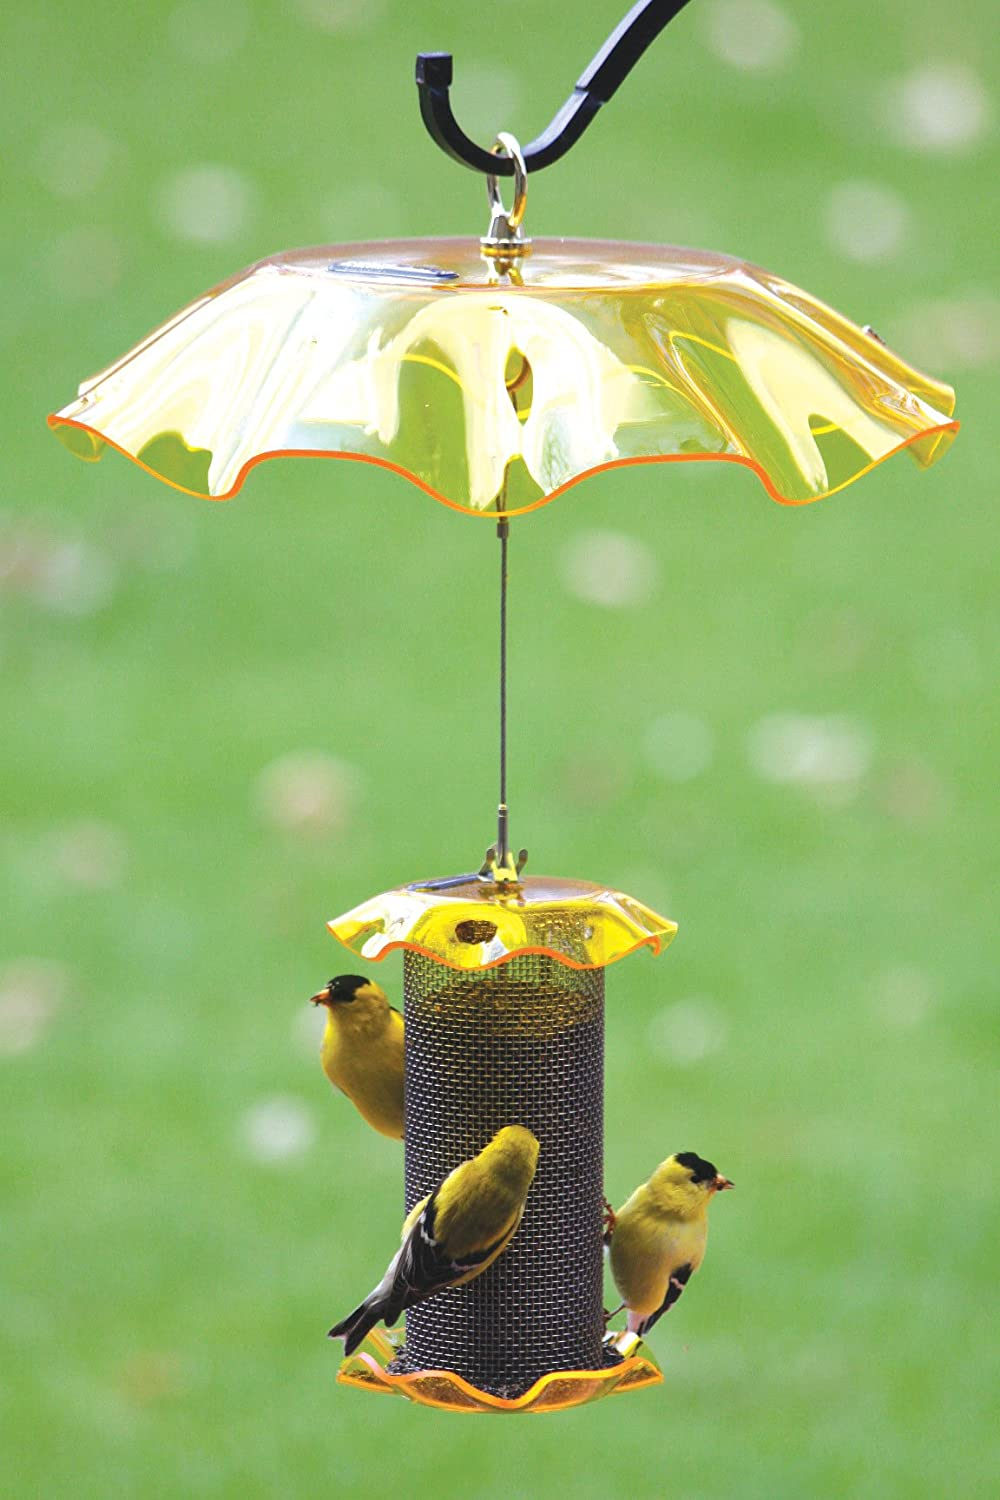 tube feeders upside finch feeder pet bird down wild perky house